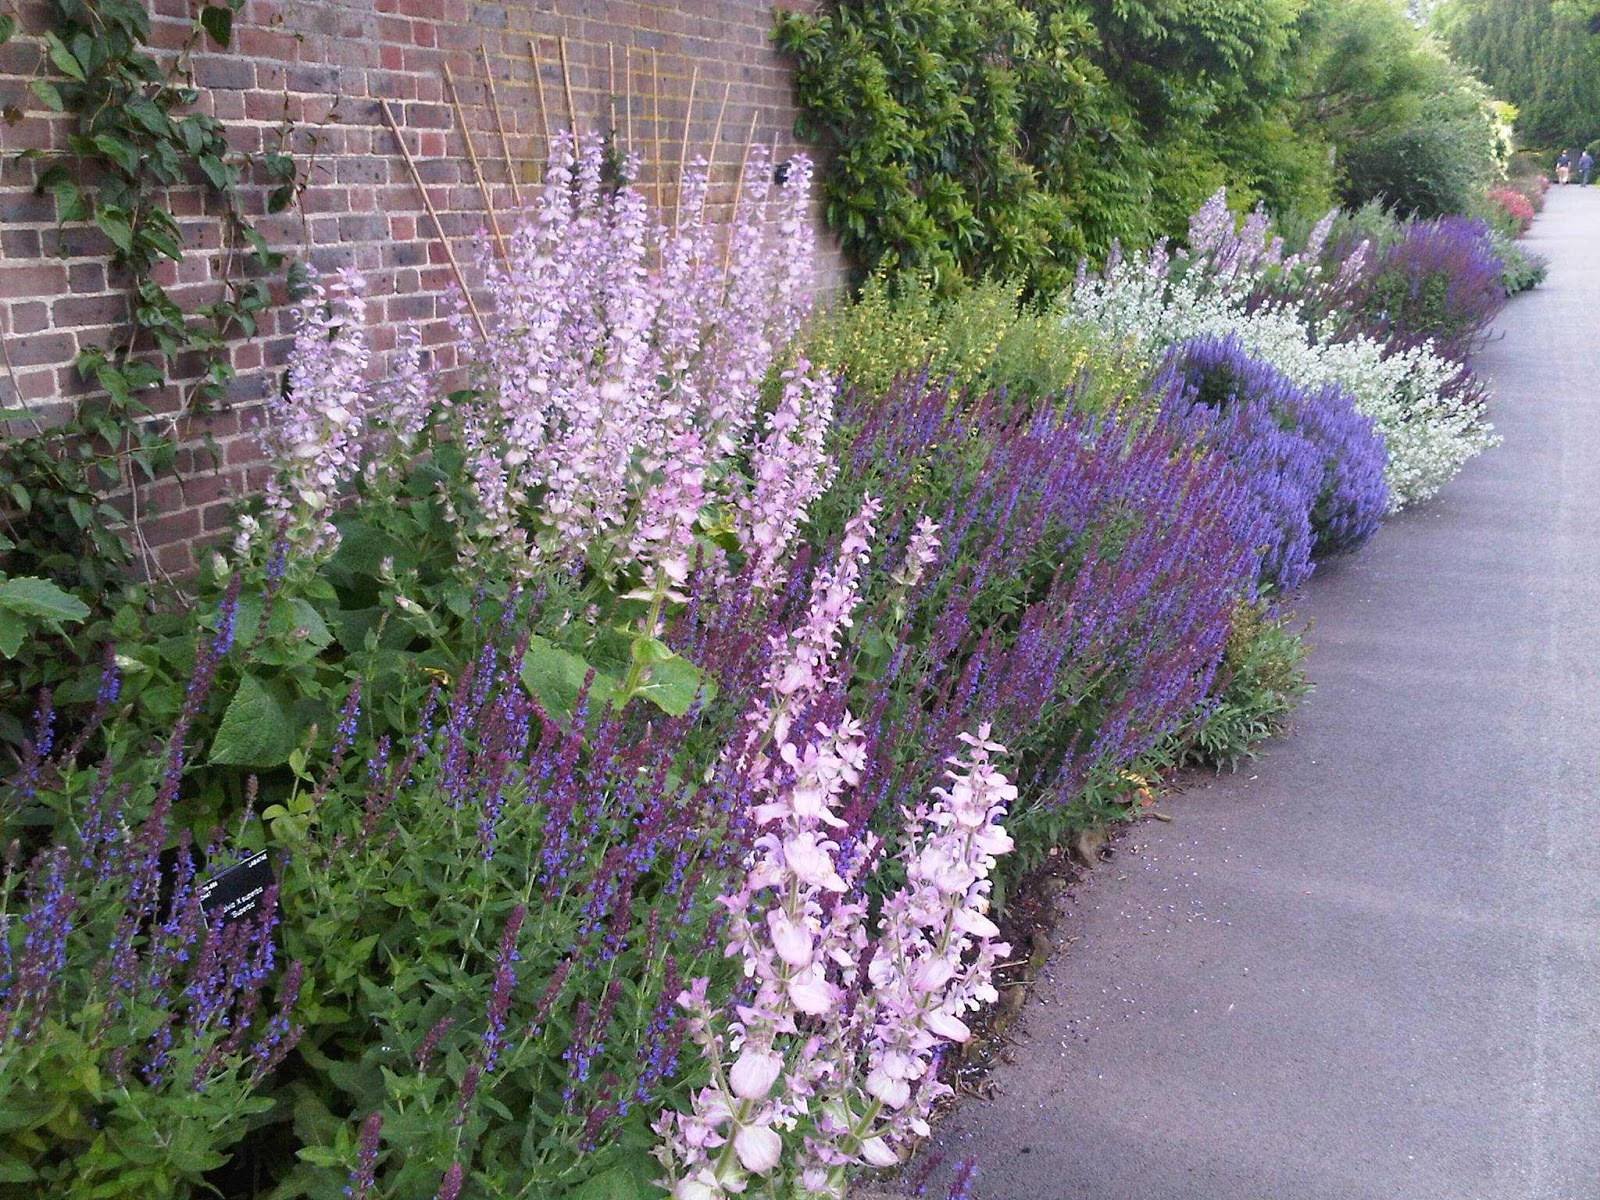 Salvia Plants: Growing & Caring for Ornamental Sages ... |Salvia Plants